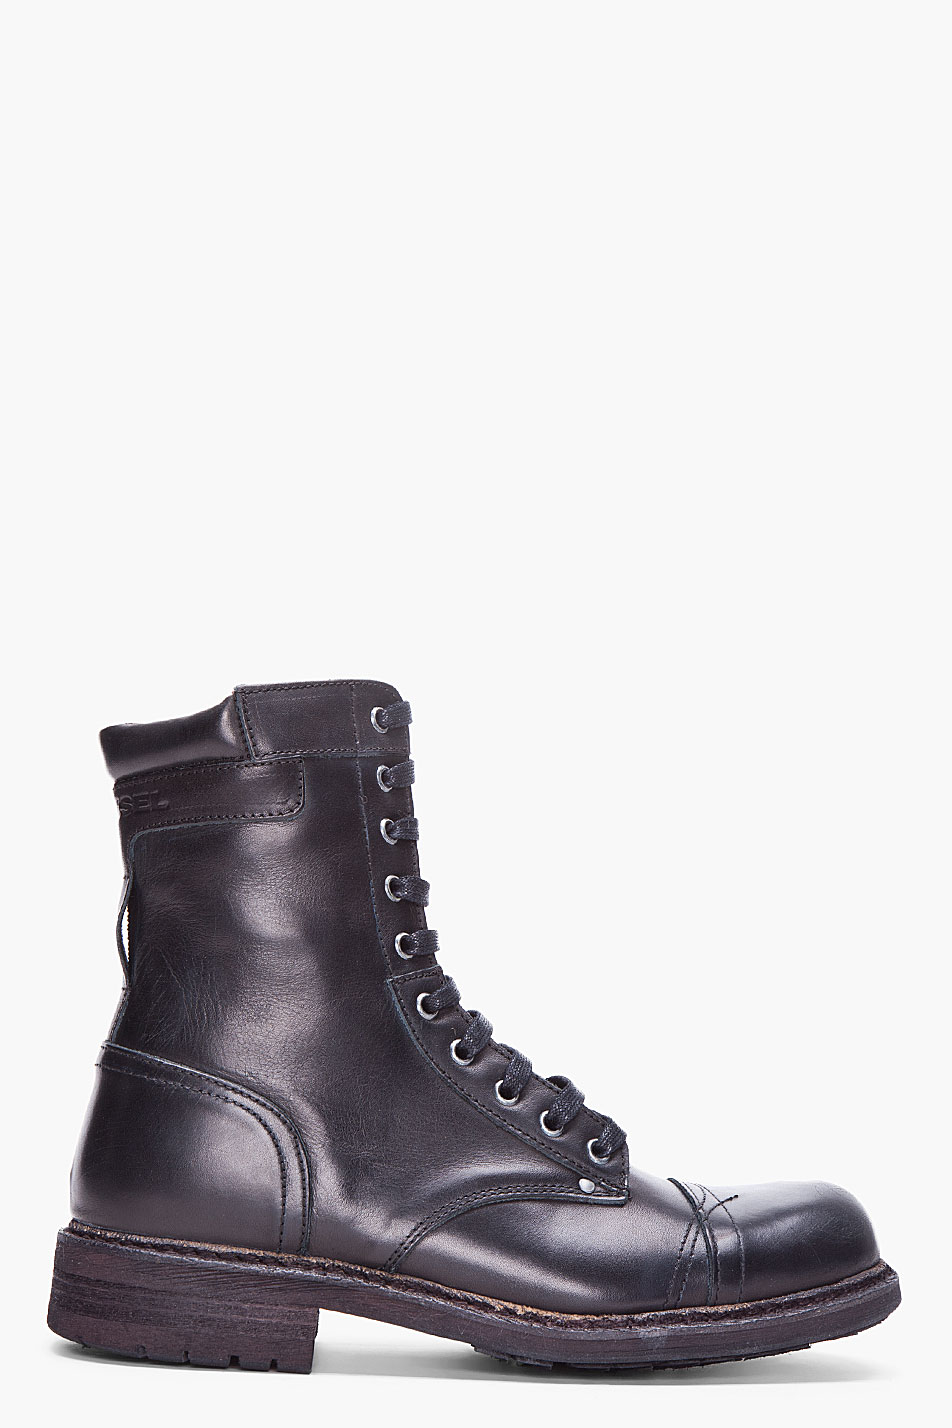 lyst diesel black cassidy military boots in black for men